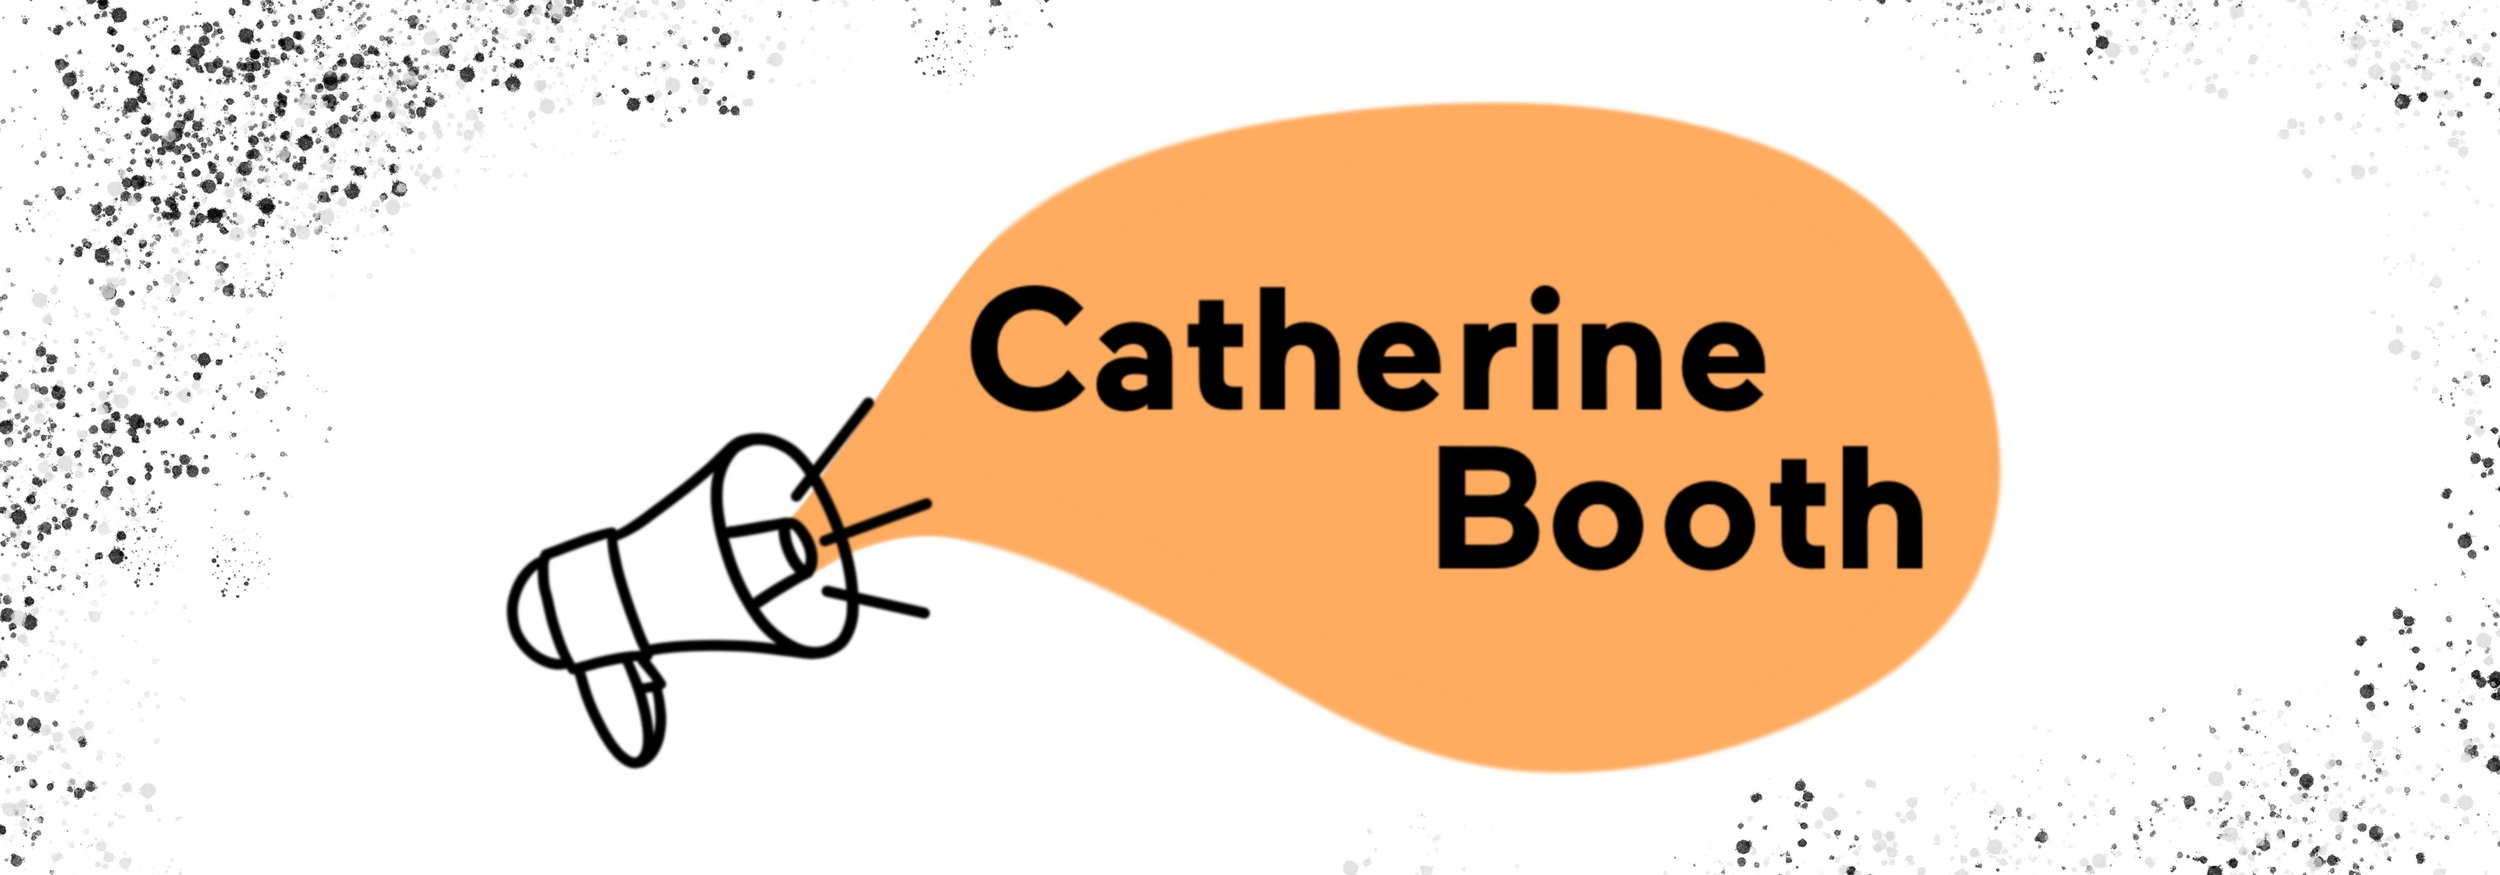 Catherine_Booth_Website_Banner.jpg